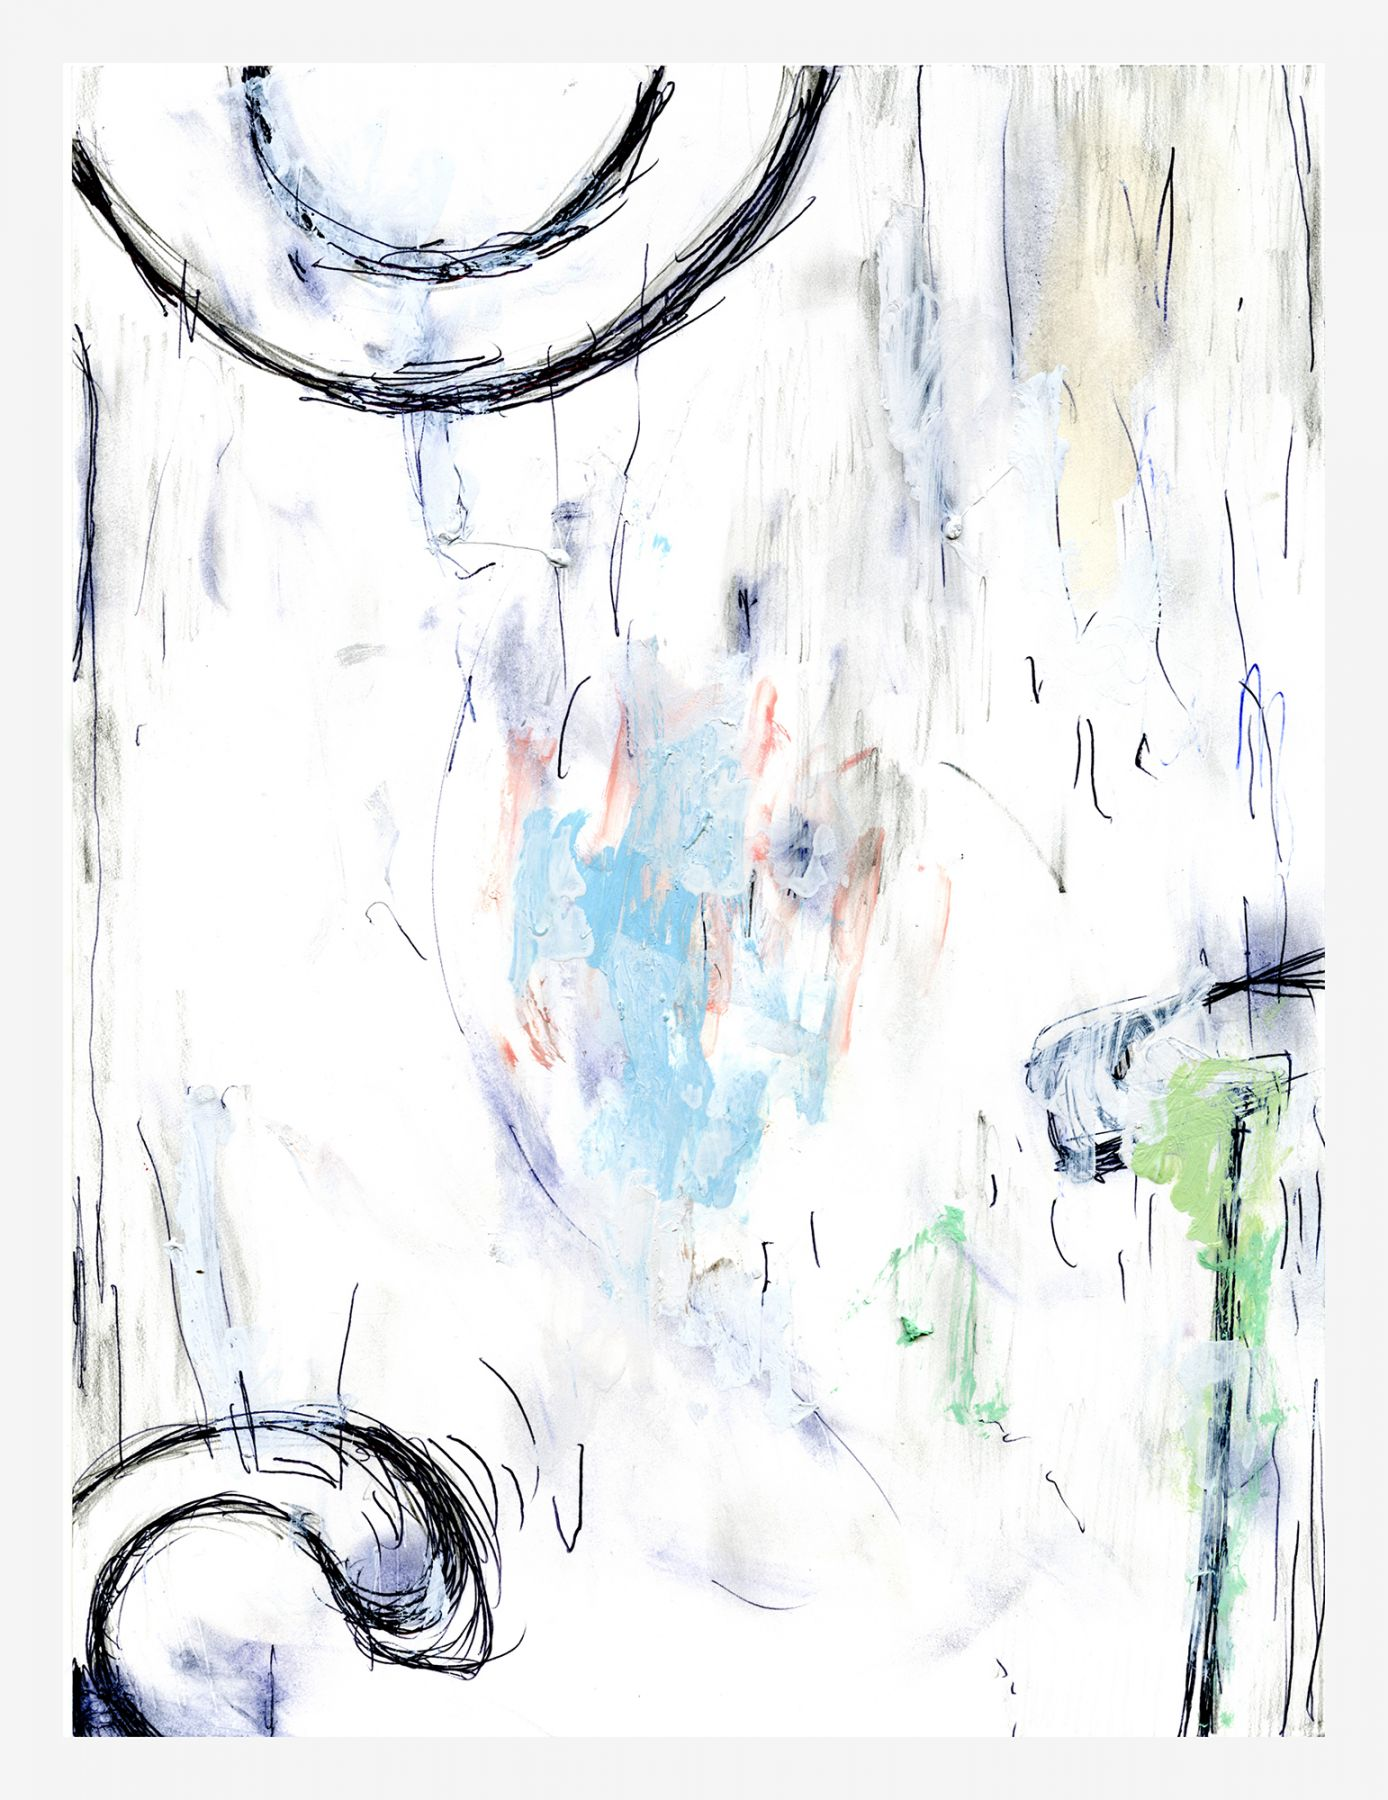 William Pope L. 089, 10-11, o/s, h, A, 2013 Mixed media on paper 12 x 9 inches (30.5 x 22.9 cm)